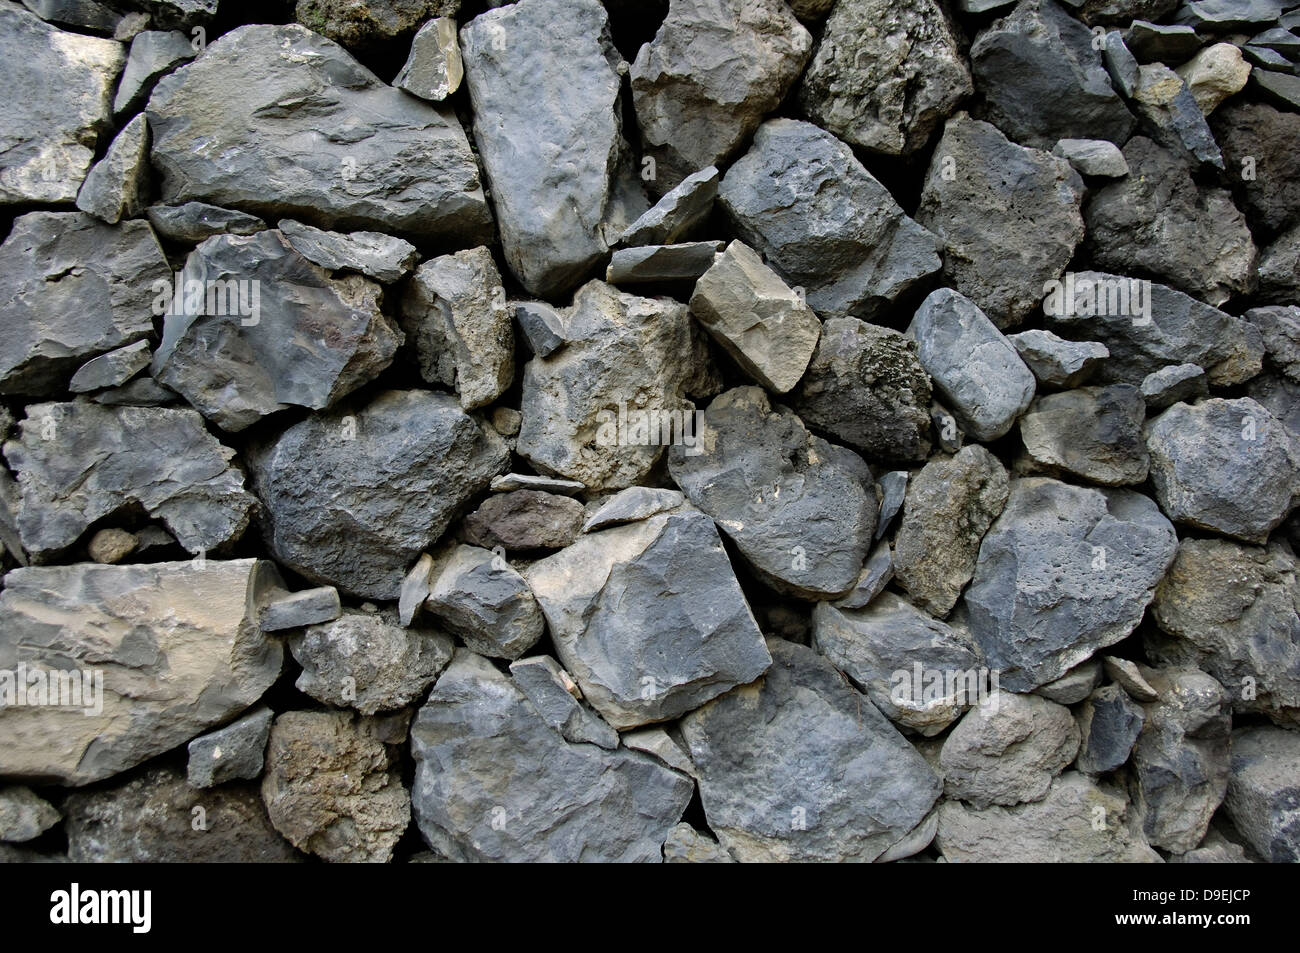 More poorly from stacked quarrystones - Stock Image